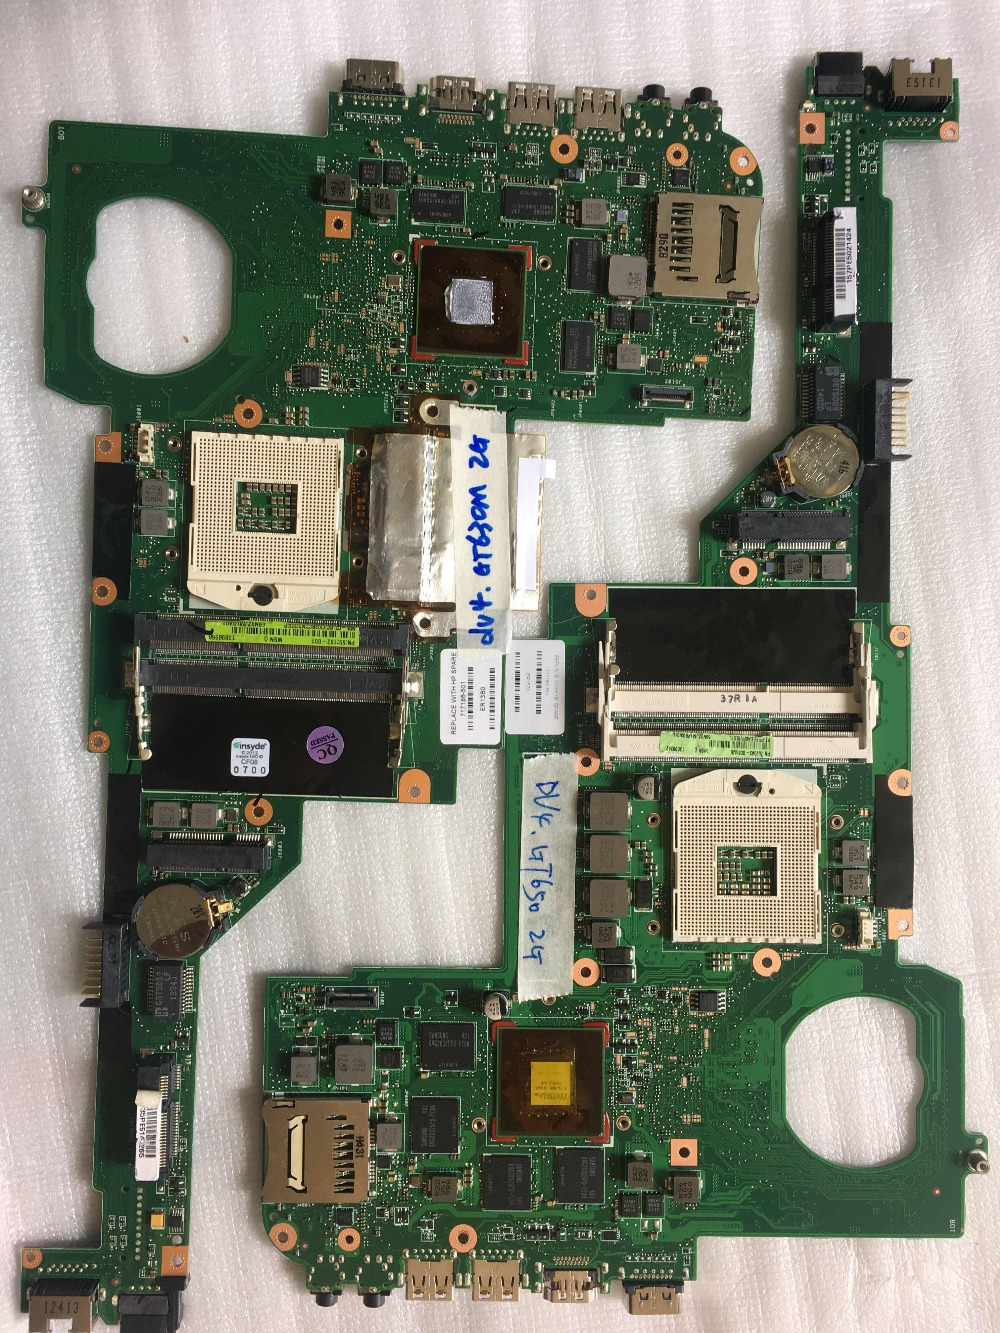 dv4-5000 717183-501 gt650 717186-001 gt630 702664-001 gt635 connect board connect with motherboard lap connect board a505d v000198070 full test lap connect board connect with motherboard board